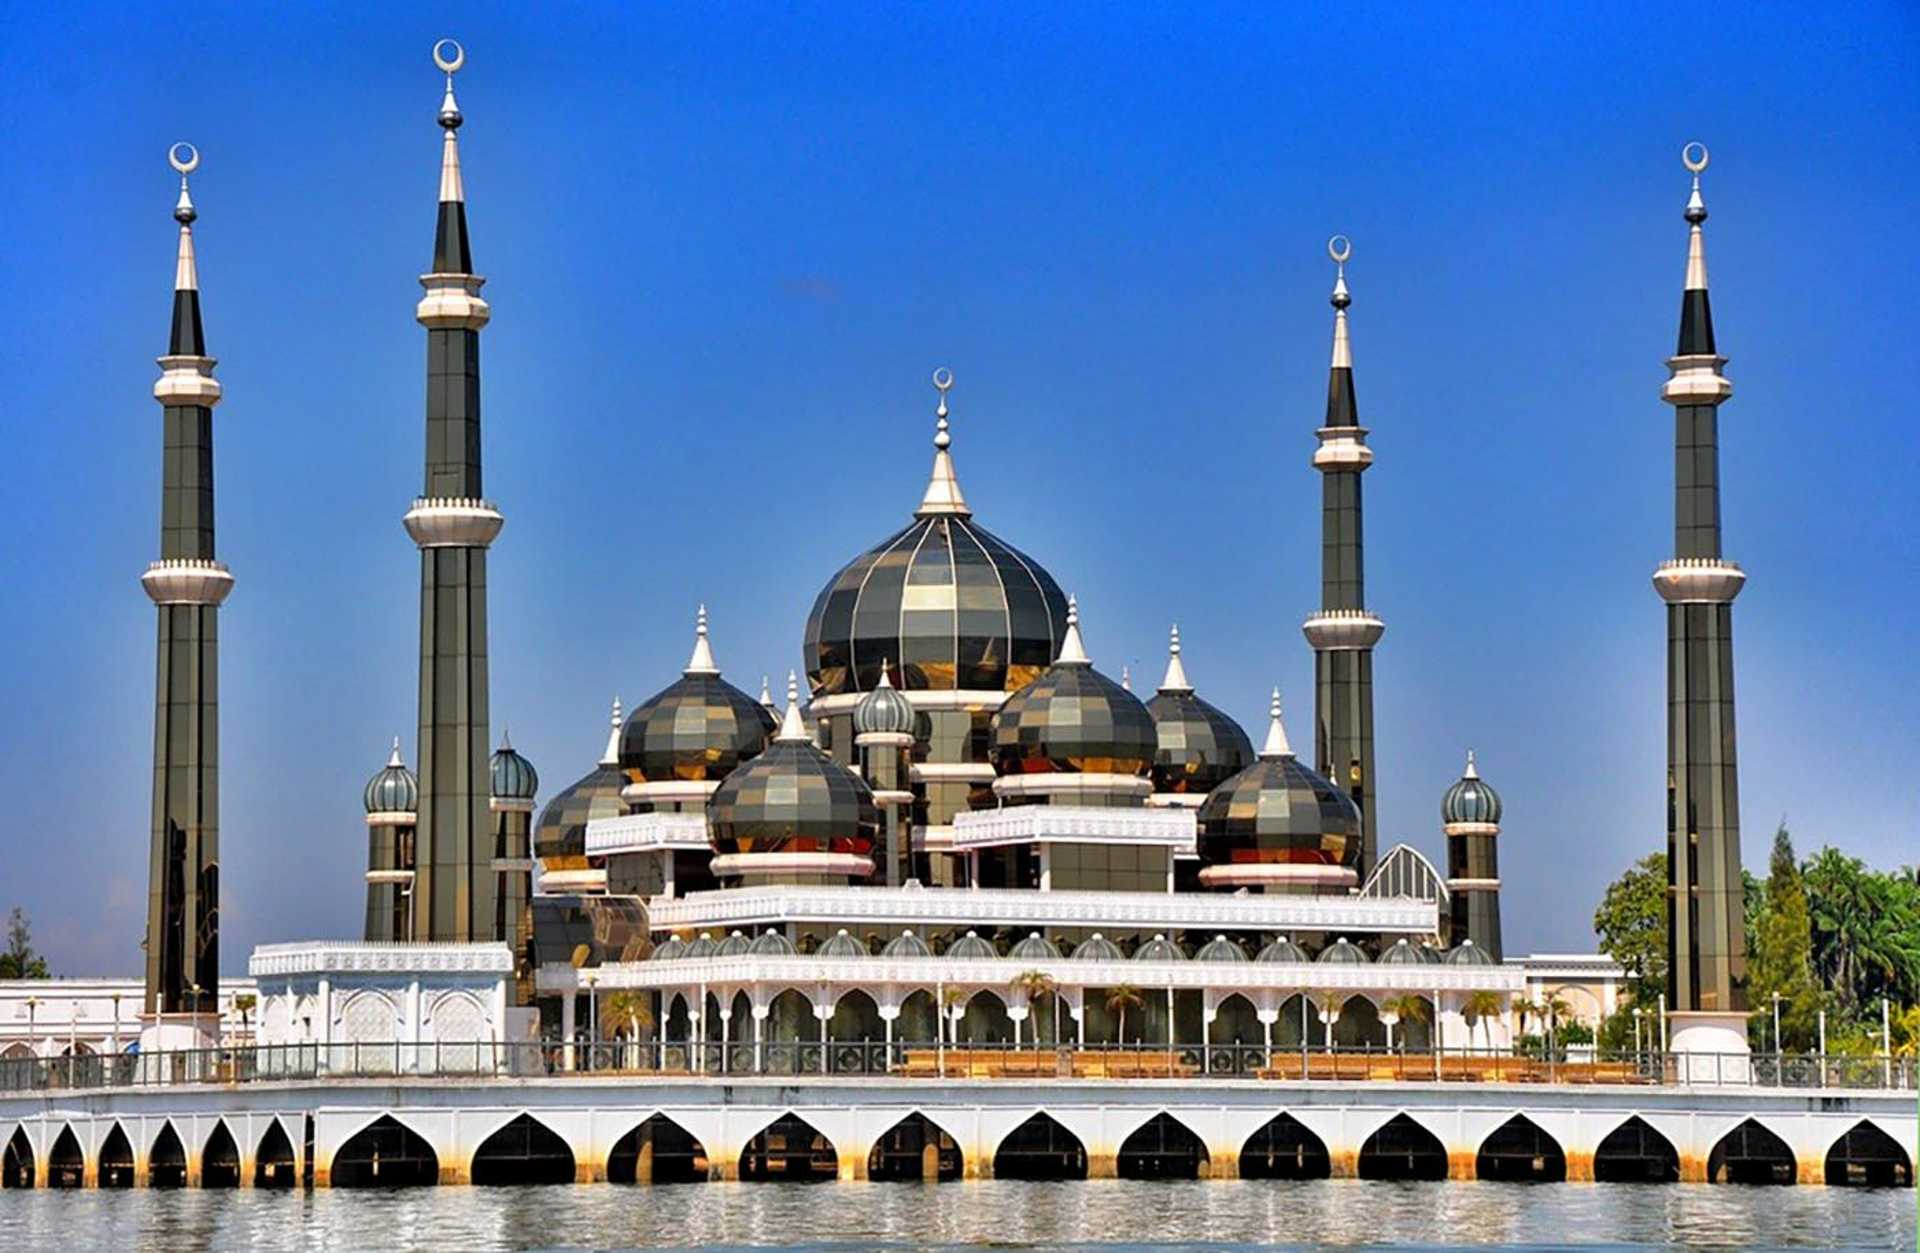 10. Crystal Mosque